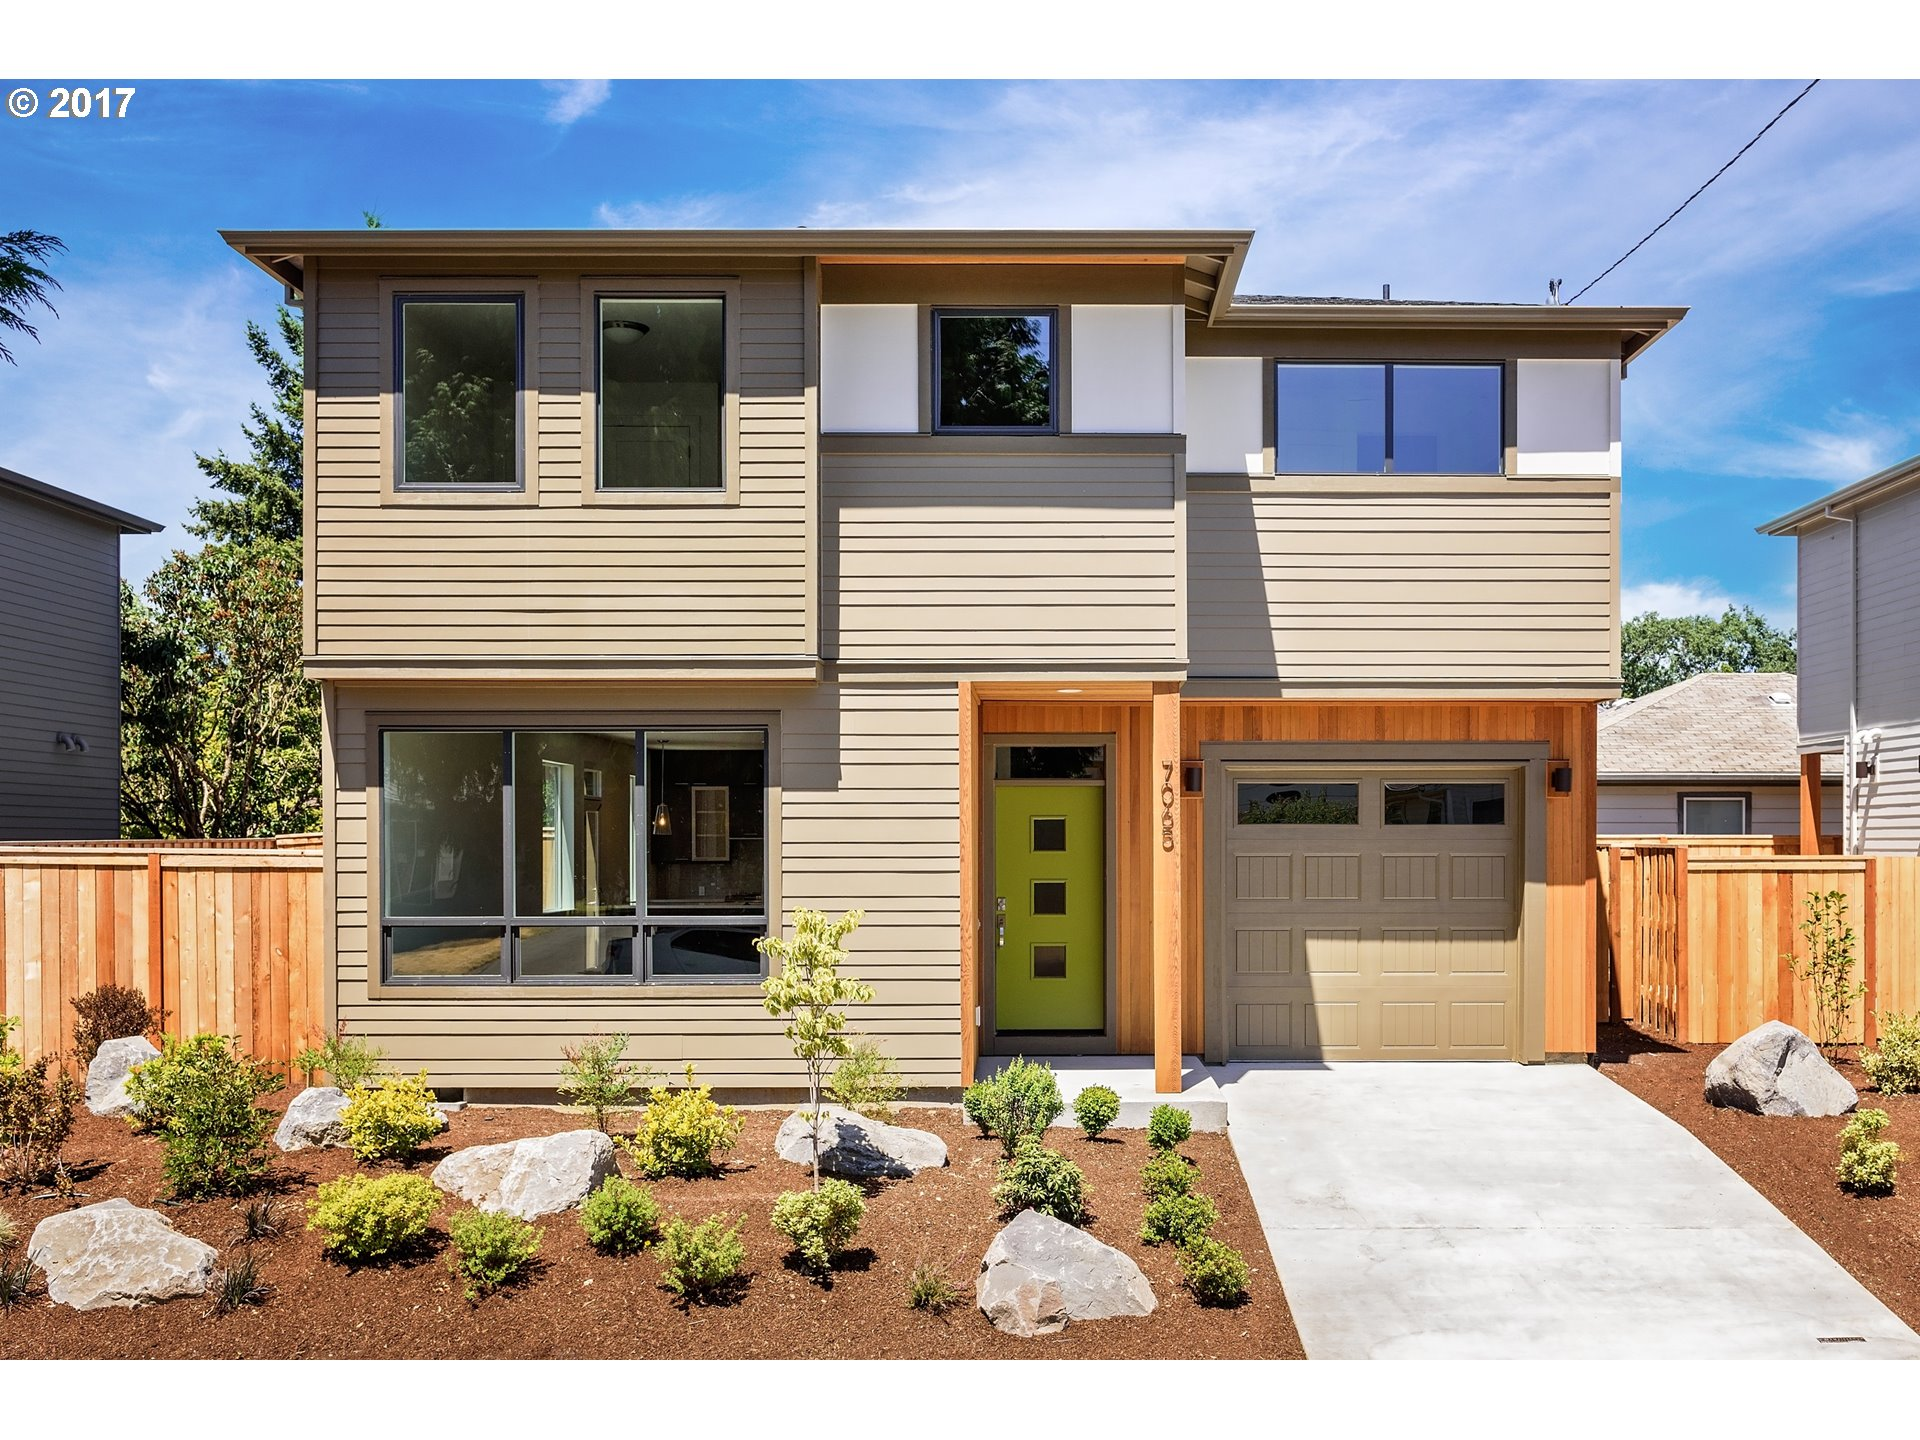 1602 sq. ft 3 bedrooms 2 bathrooms  House For Sale, Portland, OR